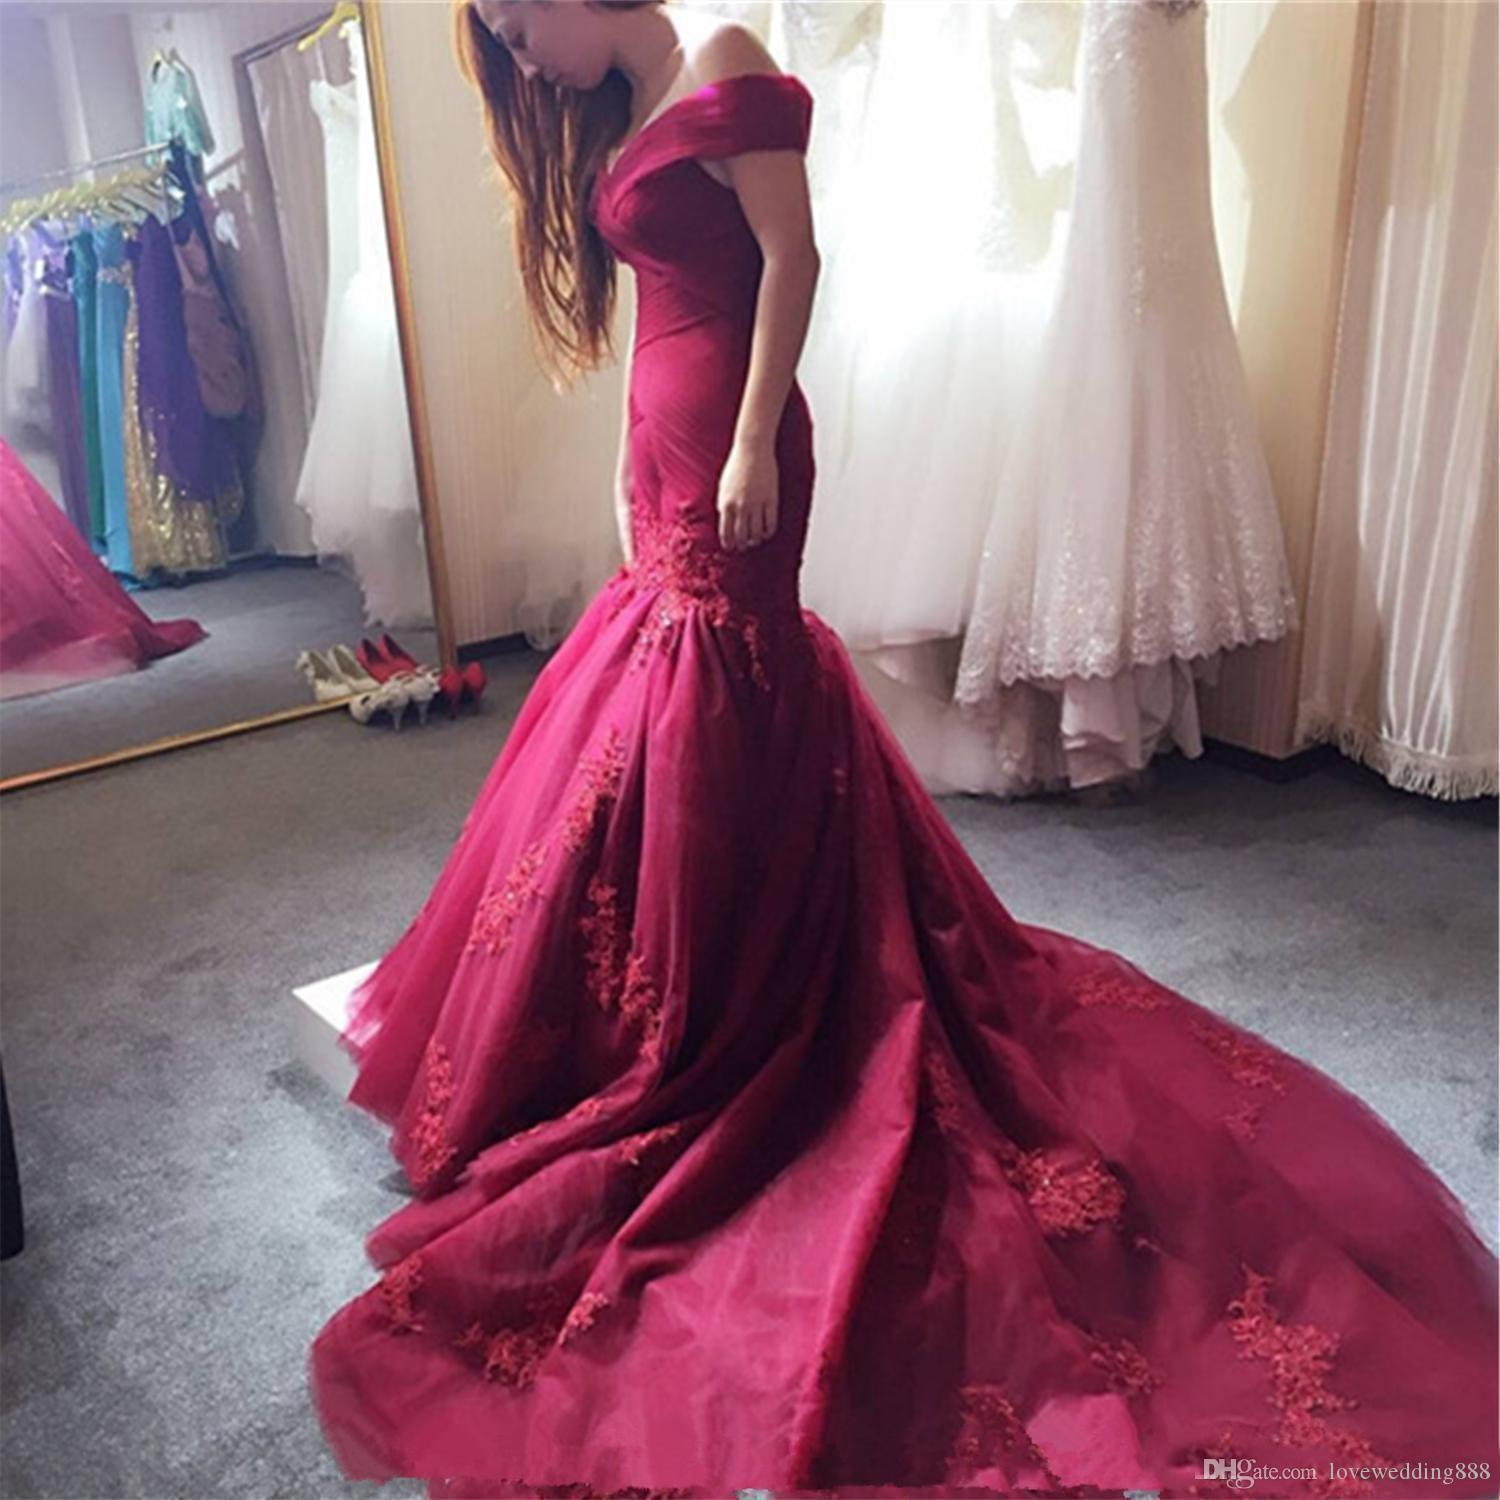 2017 Burgundy Off-The-Shoulder Prom Dresses Lace Appliqued Sequins Mermaid Evening Dresses Corset Back Charming Long Gowns